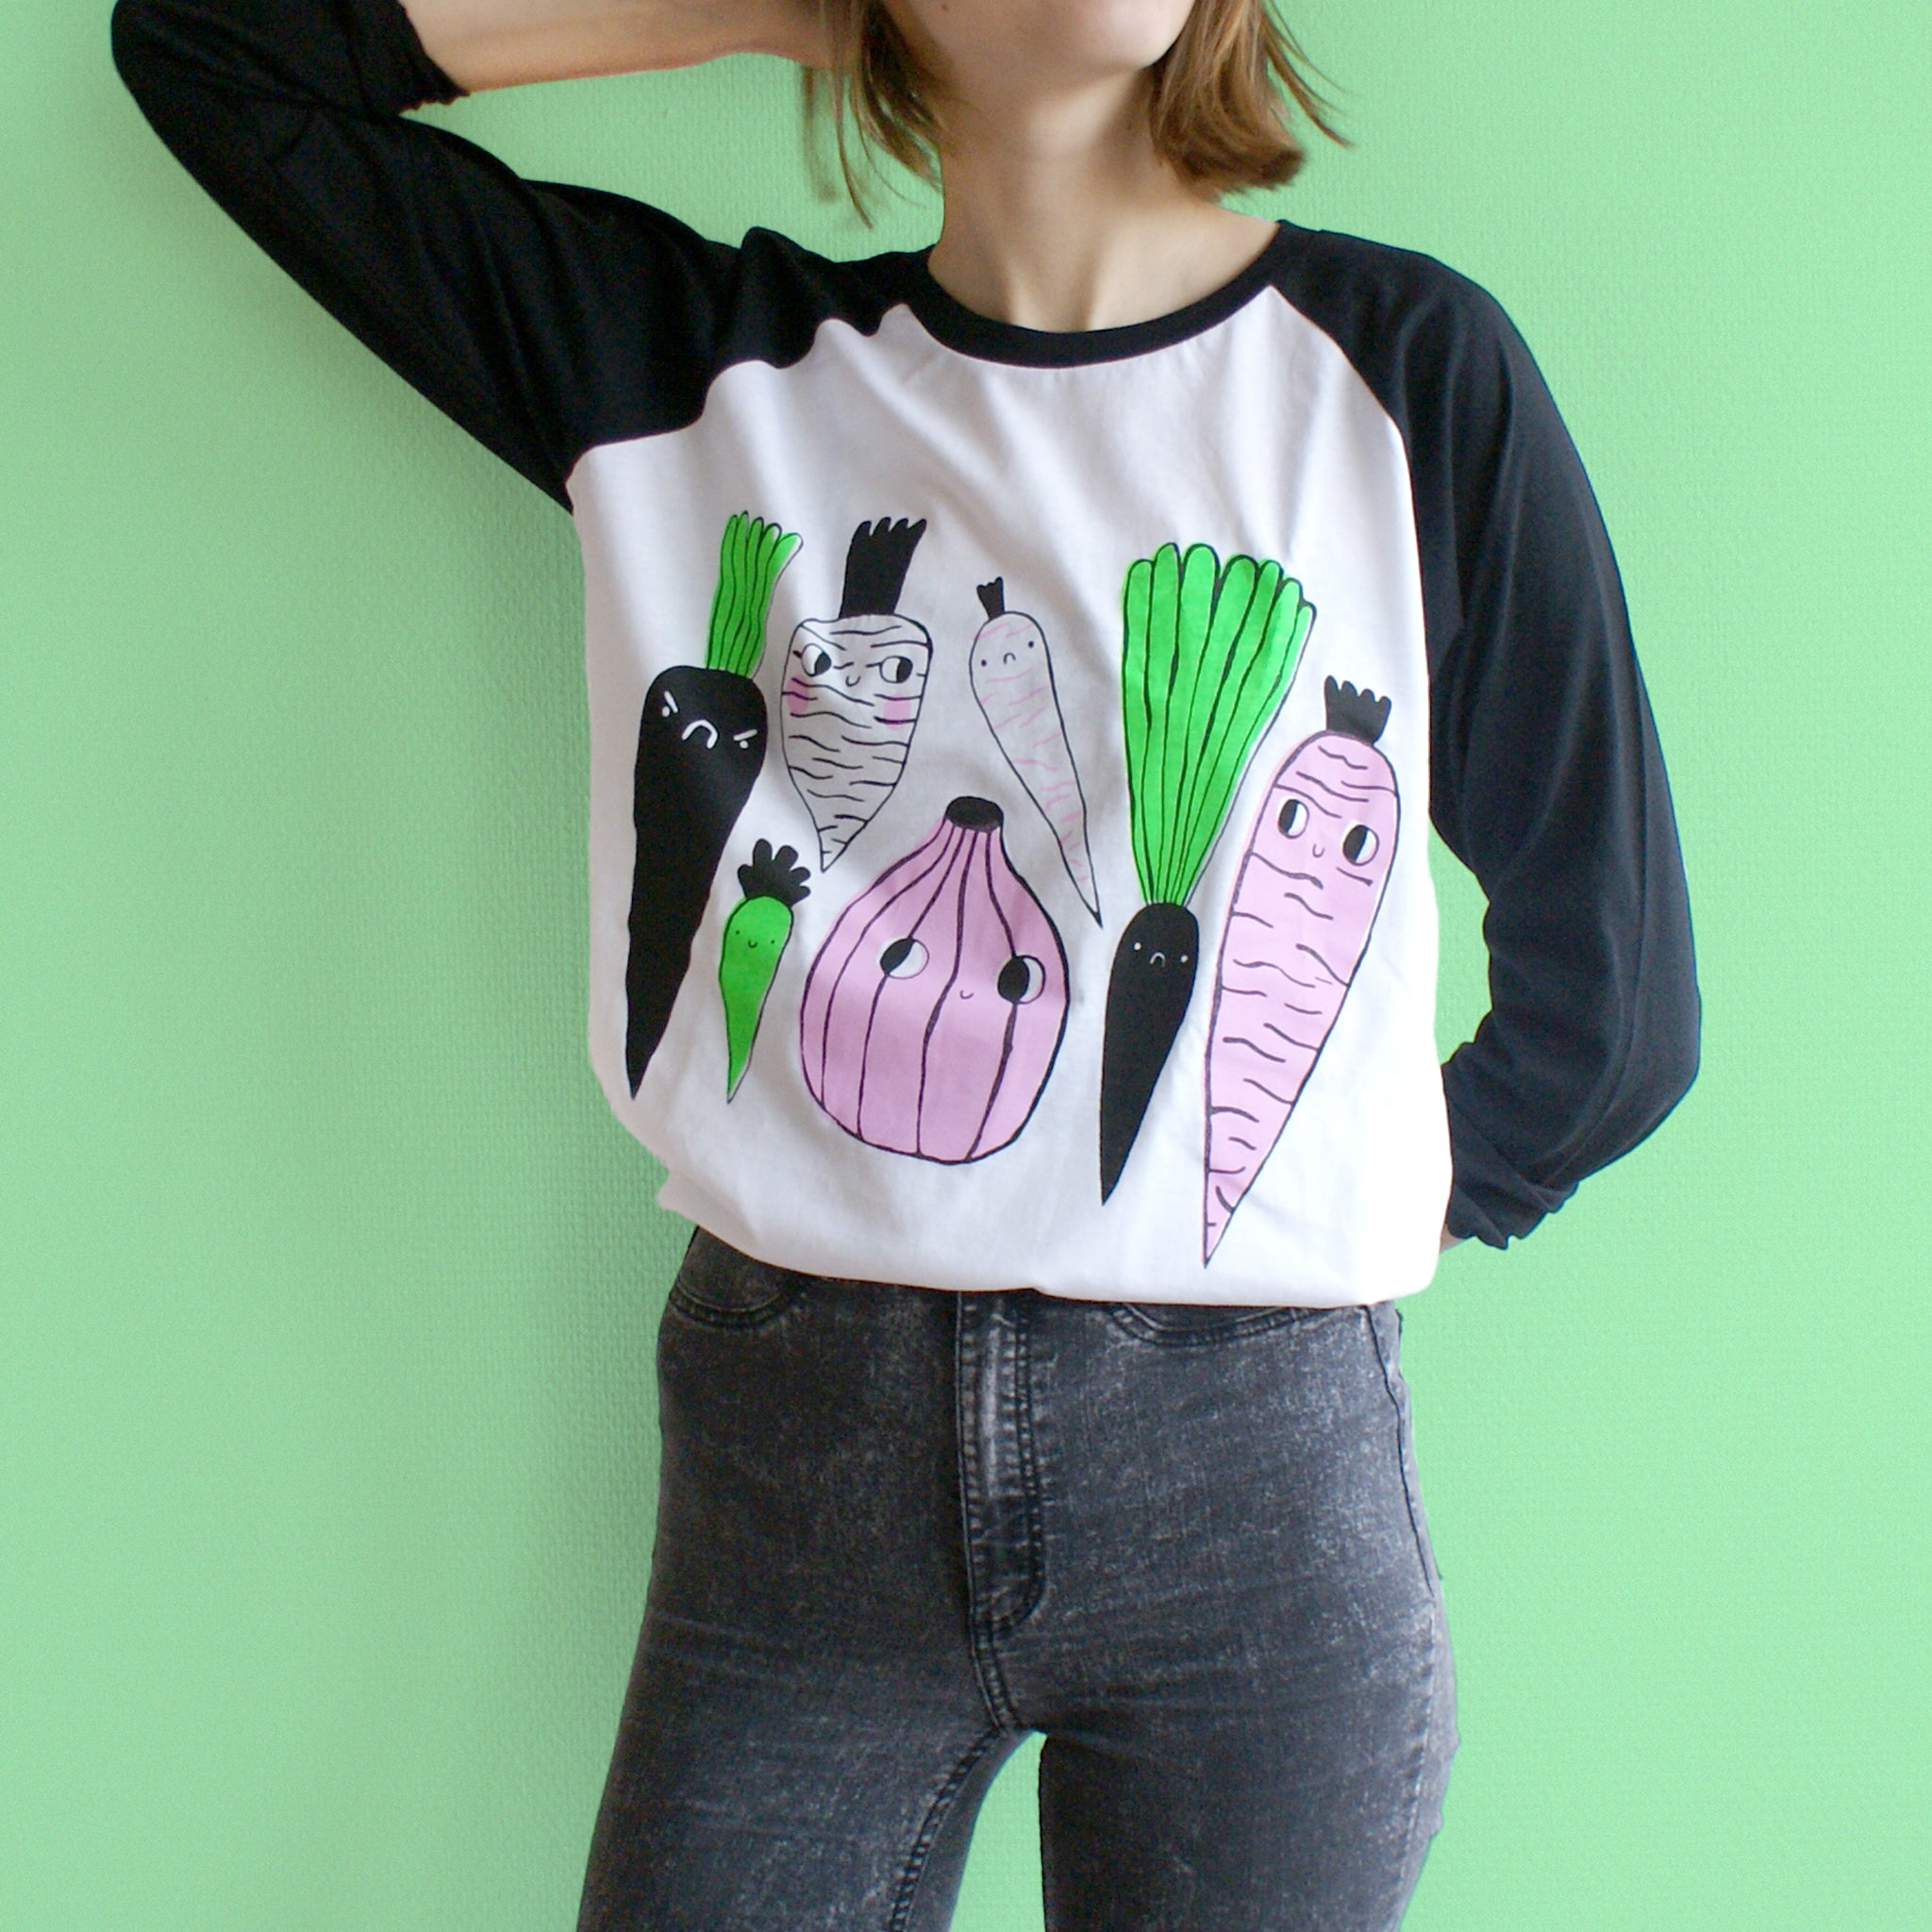 IMPERFECT 3 Color Veggie Raglan Baseball Tee in Black and White